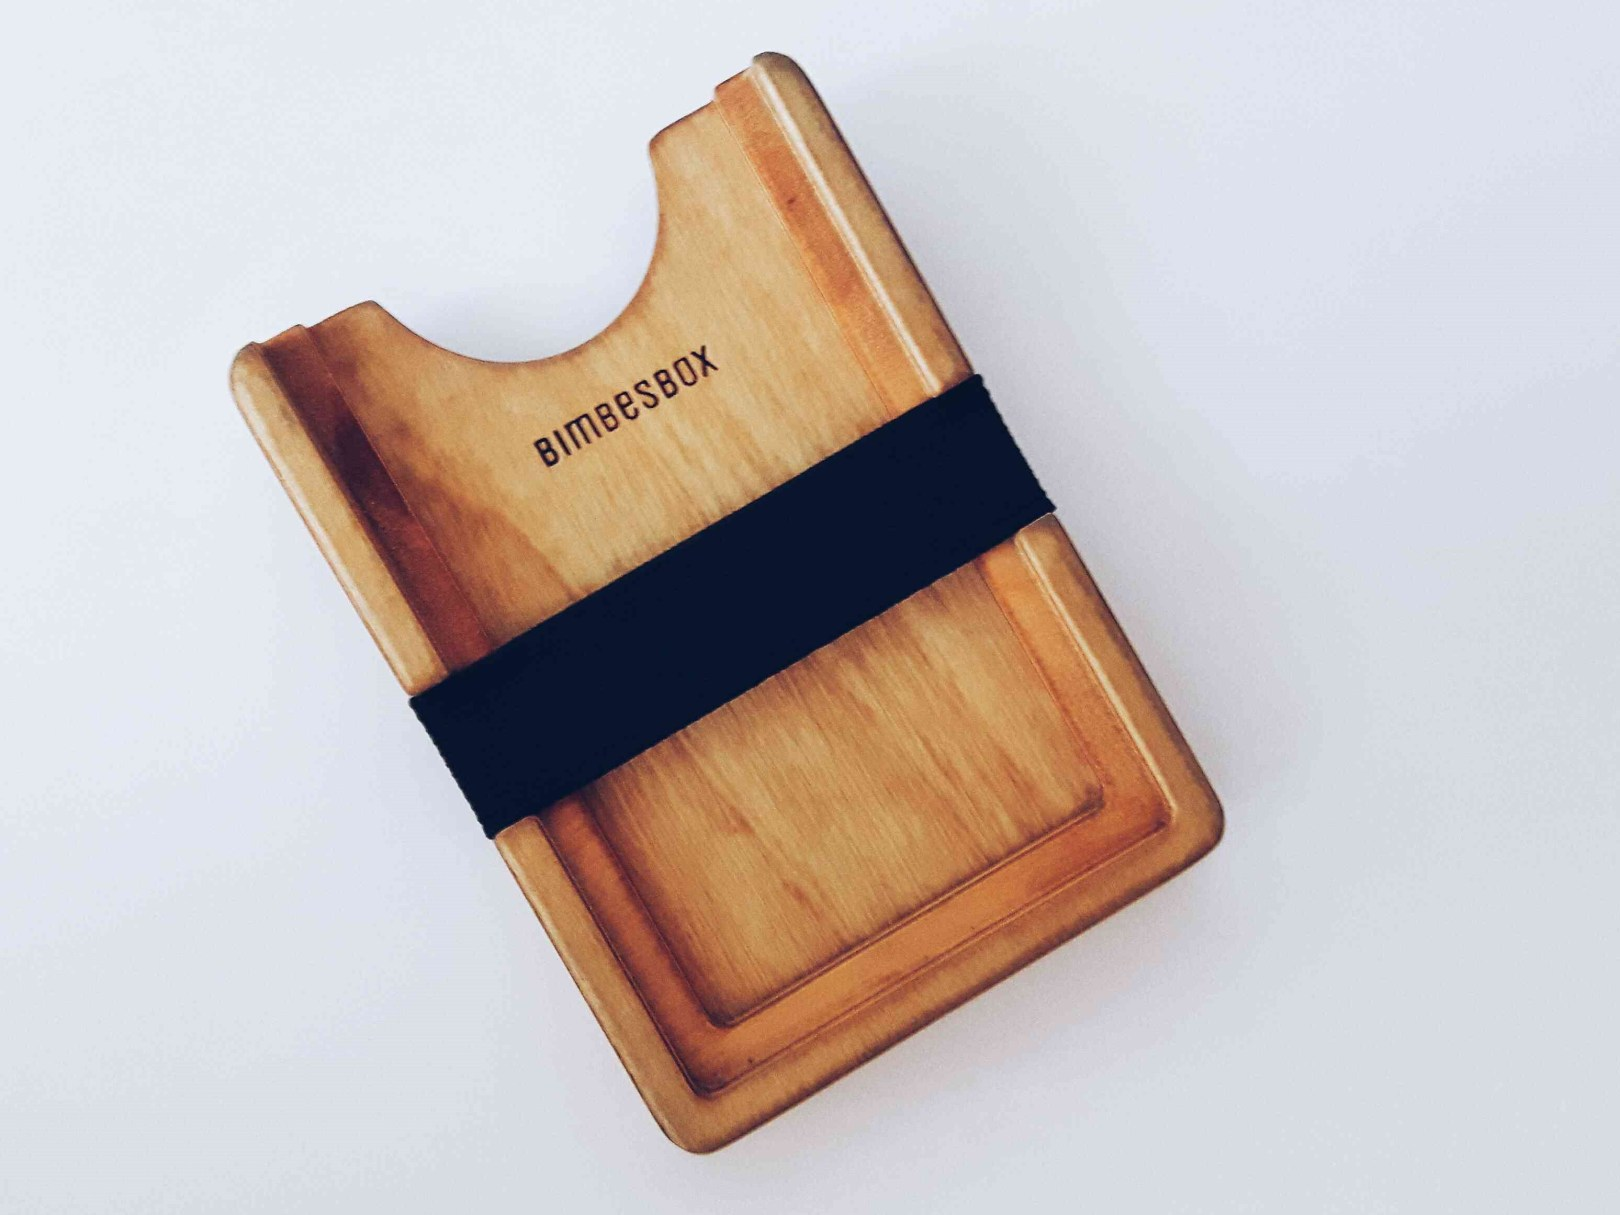 The wooden cardholder